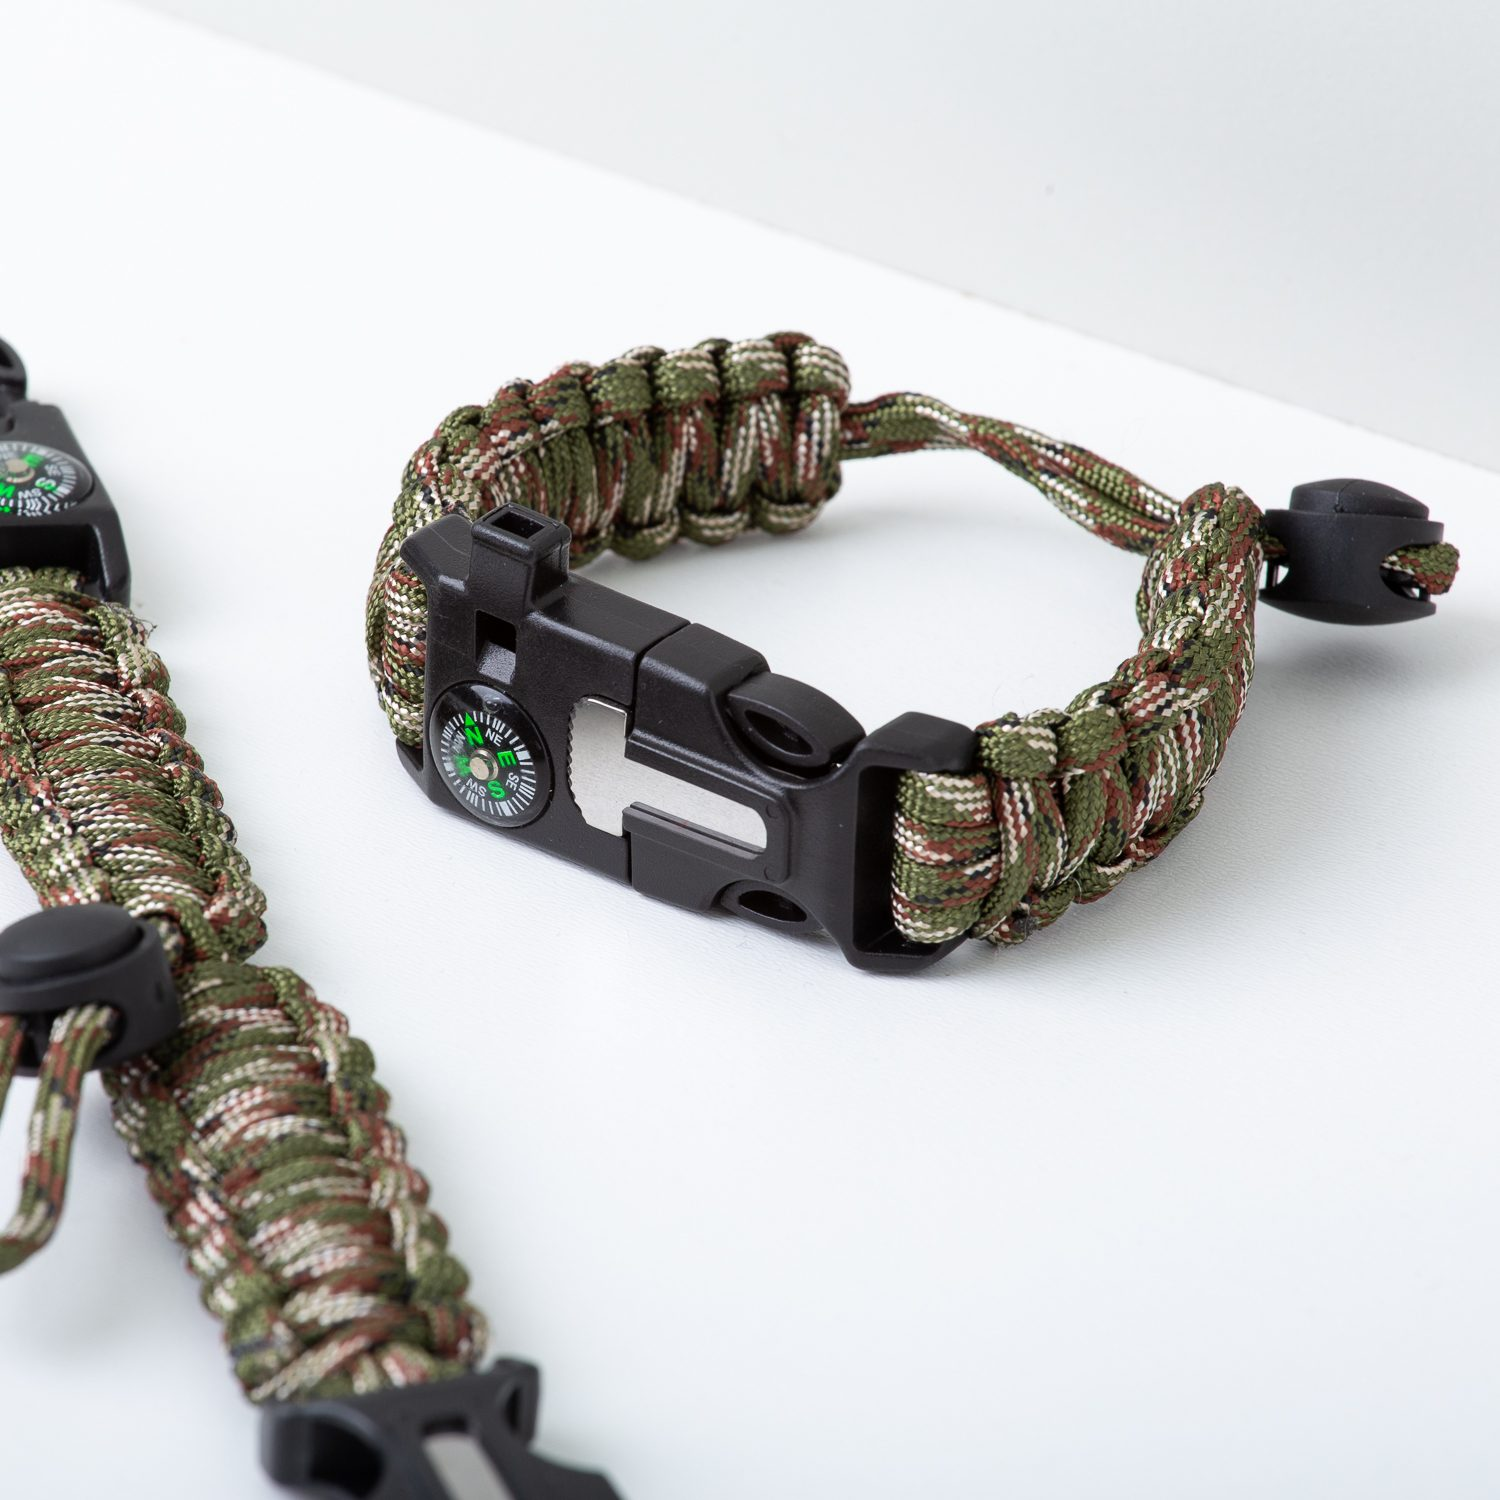 Paracord 5 in 1 survival armband